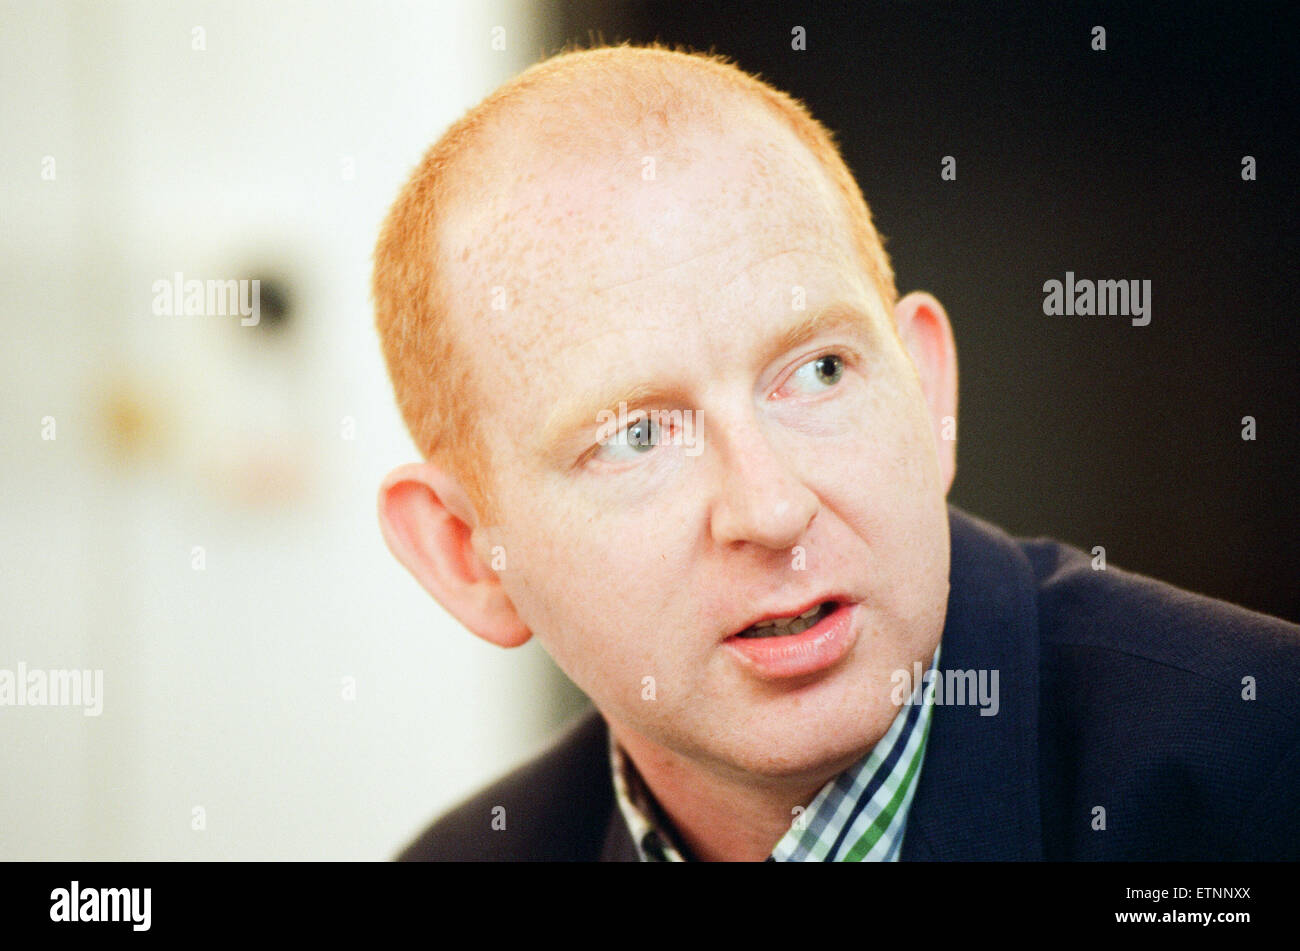 Alan McGee, co owner Creation Records label, and manager of Oasis music group, pictured 28th August 1997. - Stock Image